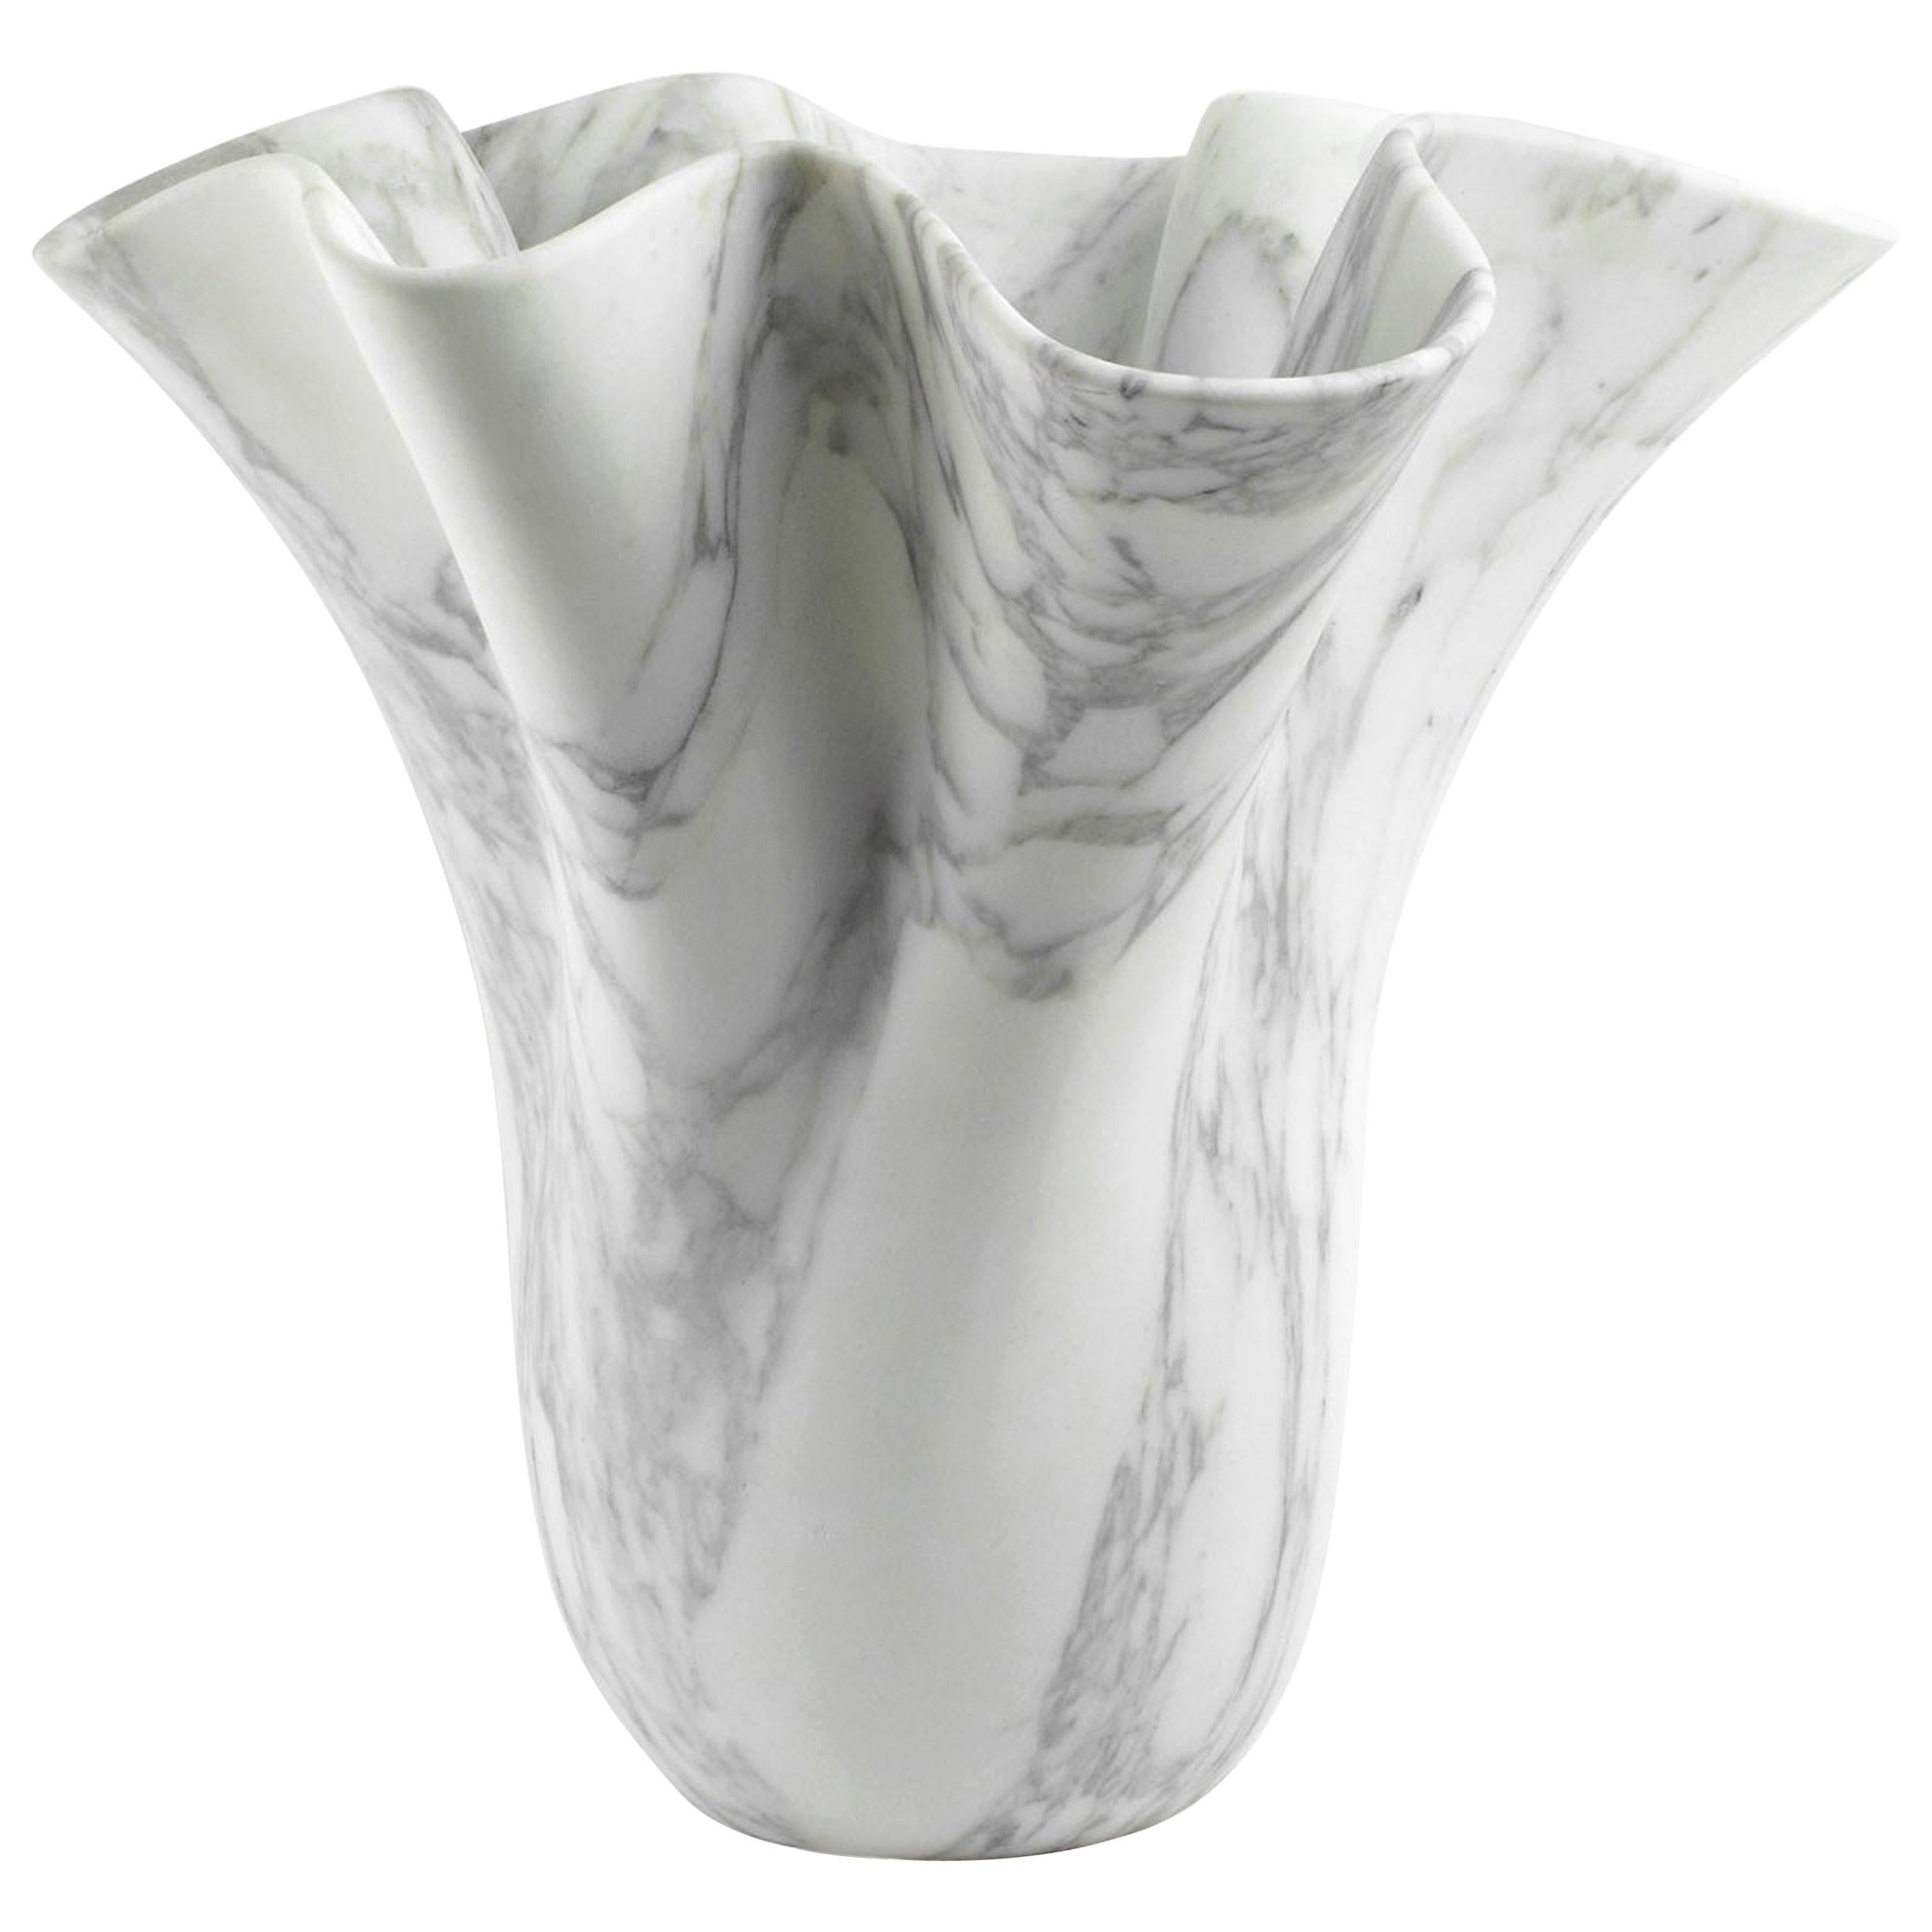 Vase Sculpture White Arabescato Marble from Carrara by Pieruga Marble